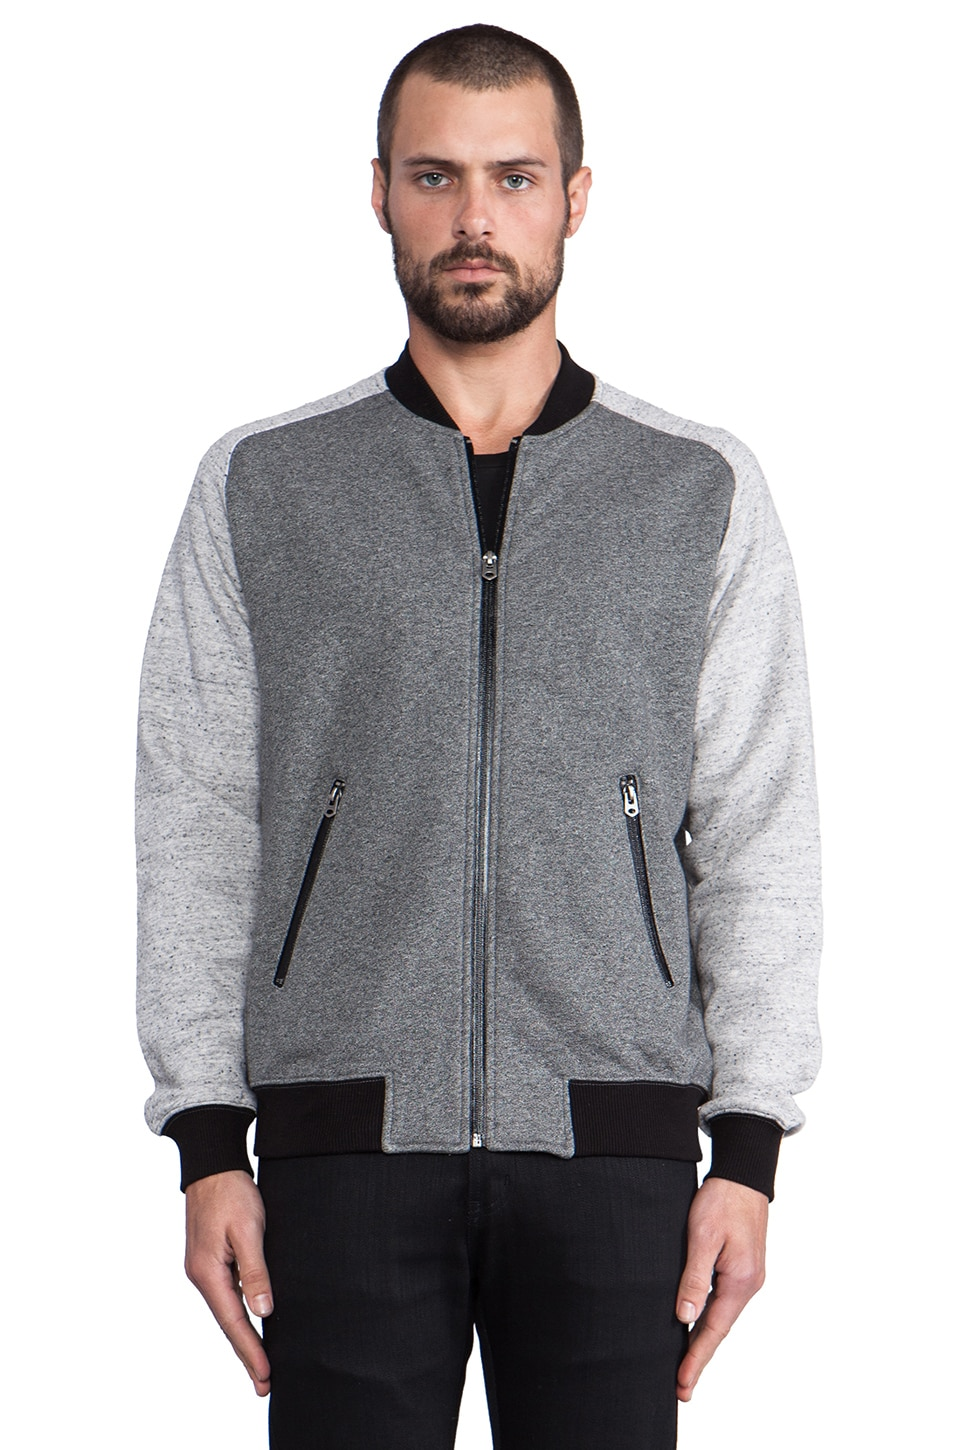 Shades of Grey by Micah Cohen Knit Bomber Jacket in Heather Graphite/Speckled Grey